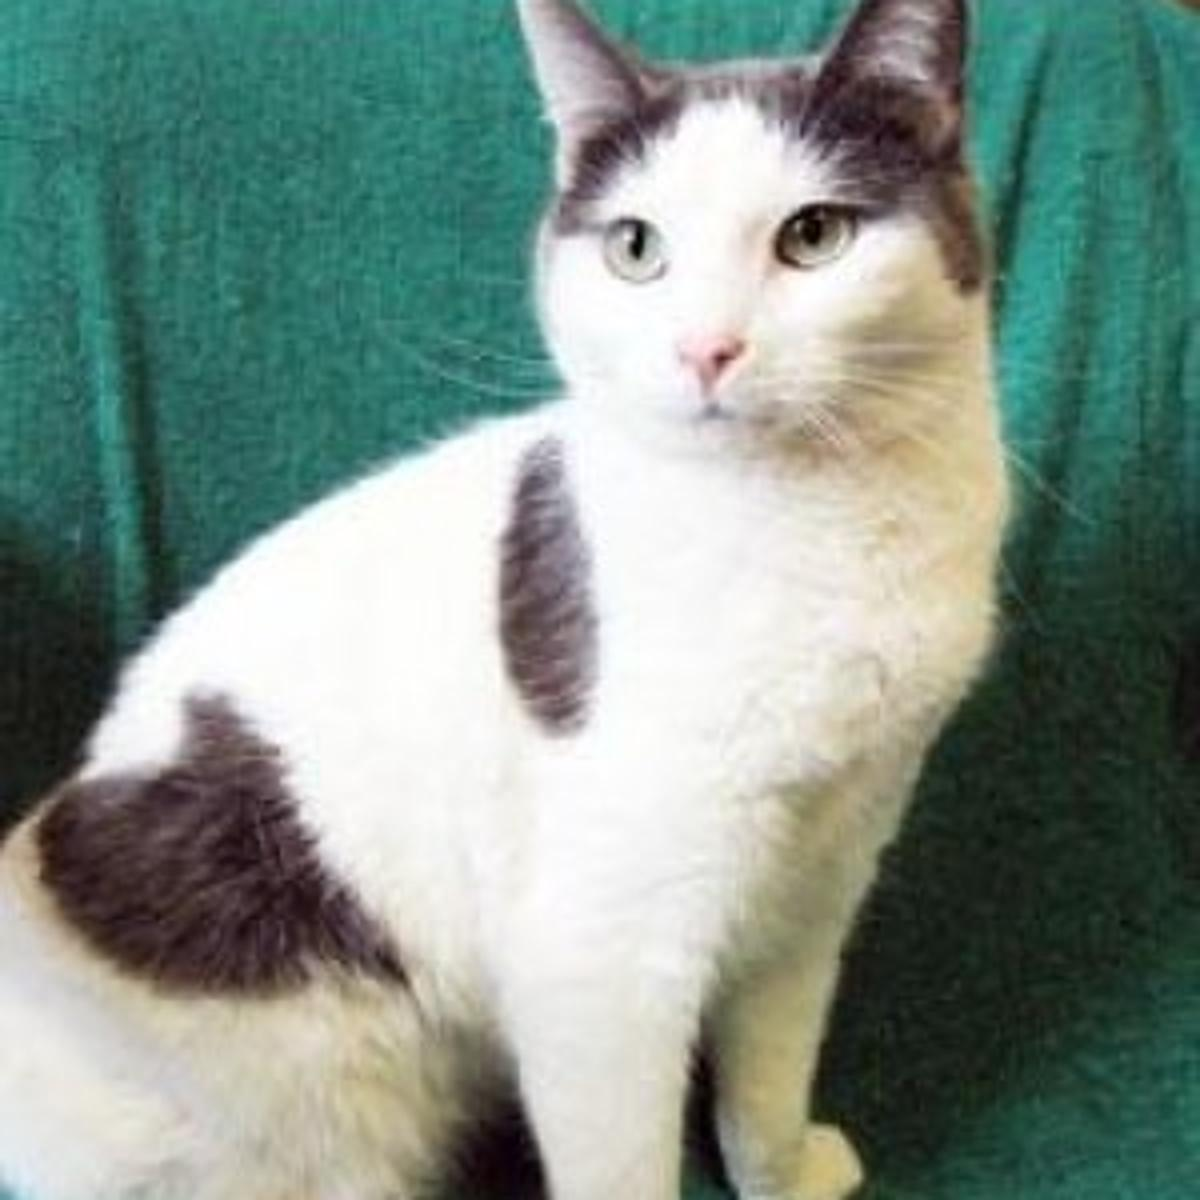 Peanut Is A 1 Year Old Grey And White Domestic Shorthair Cat That Arrived At The Dunn County Humane Society Dchs As A Stray In August She Has A Great Personality And Is A Very Friendly